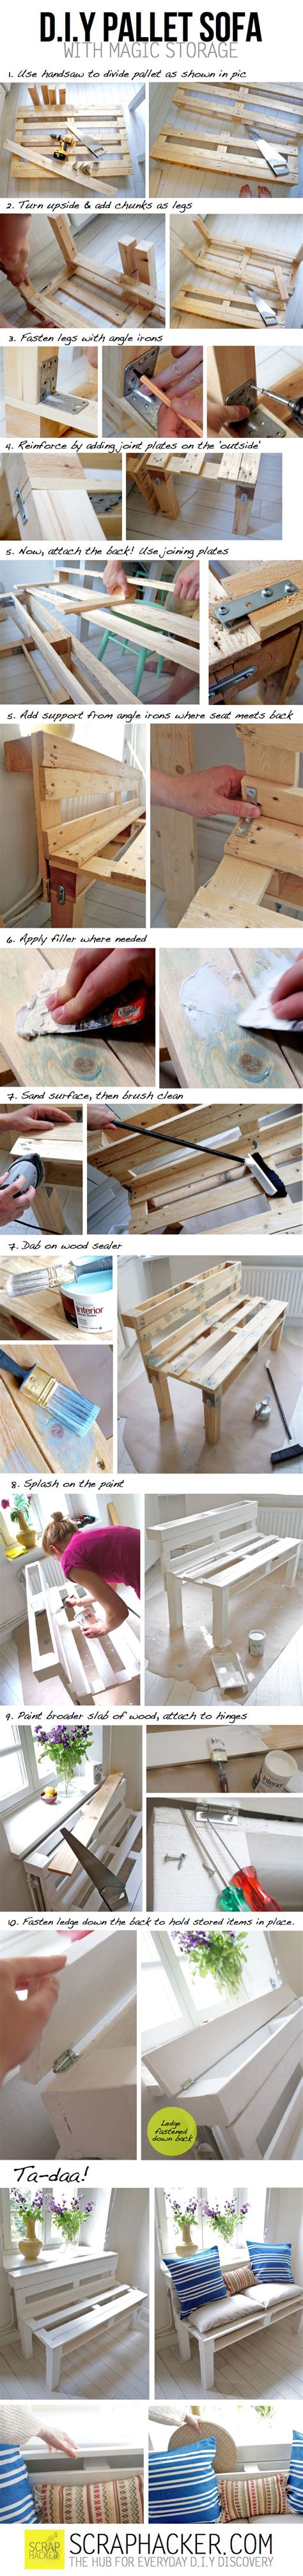 diy pallet sofa instructions diy pallet sofa tutorial pictures photos and images for